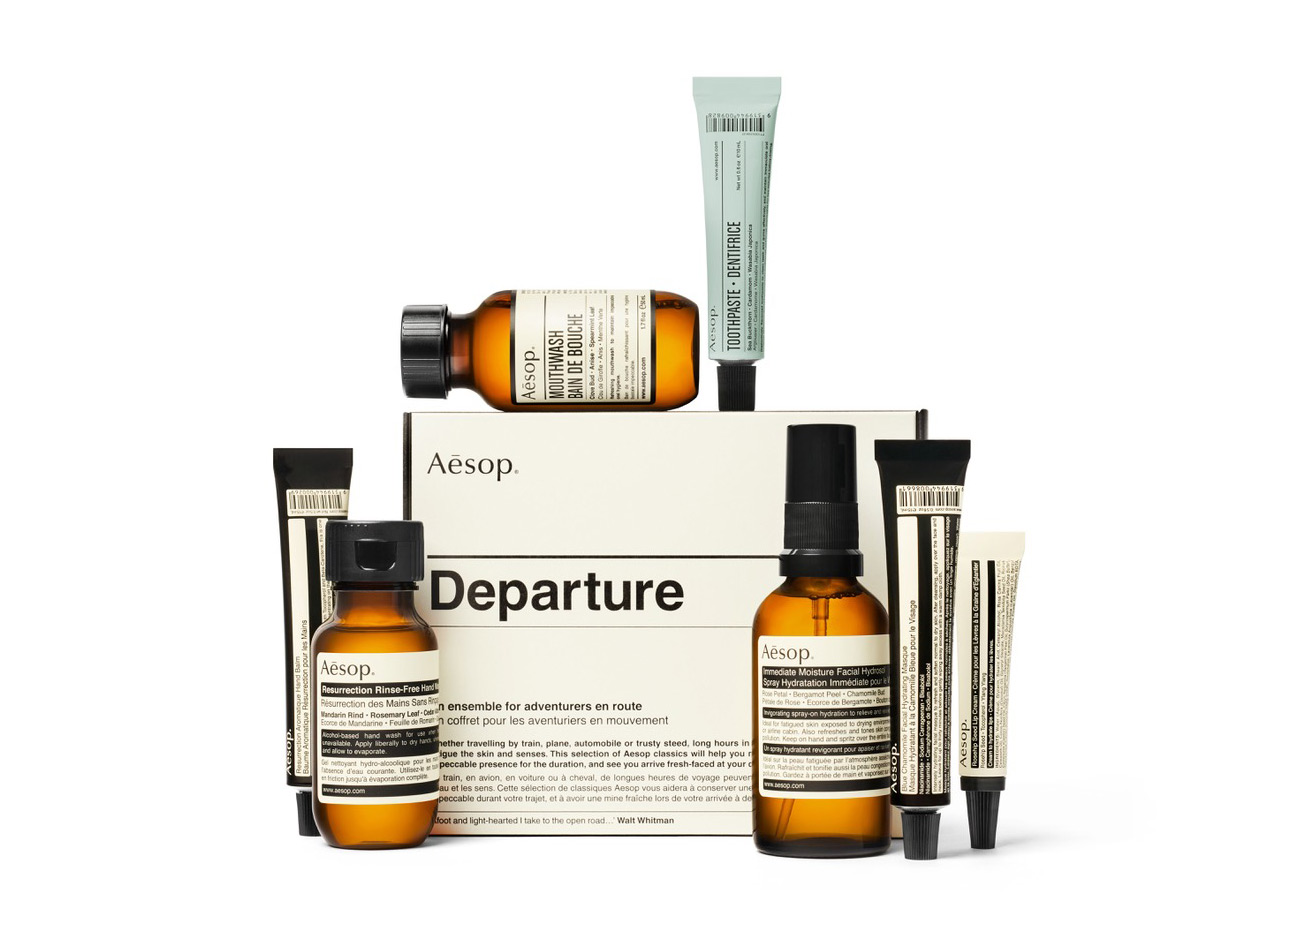 Aesop Departure Travel Kit